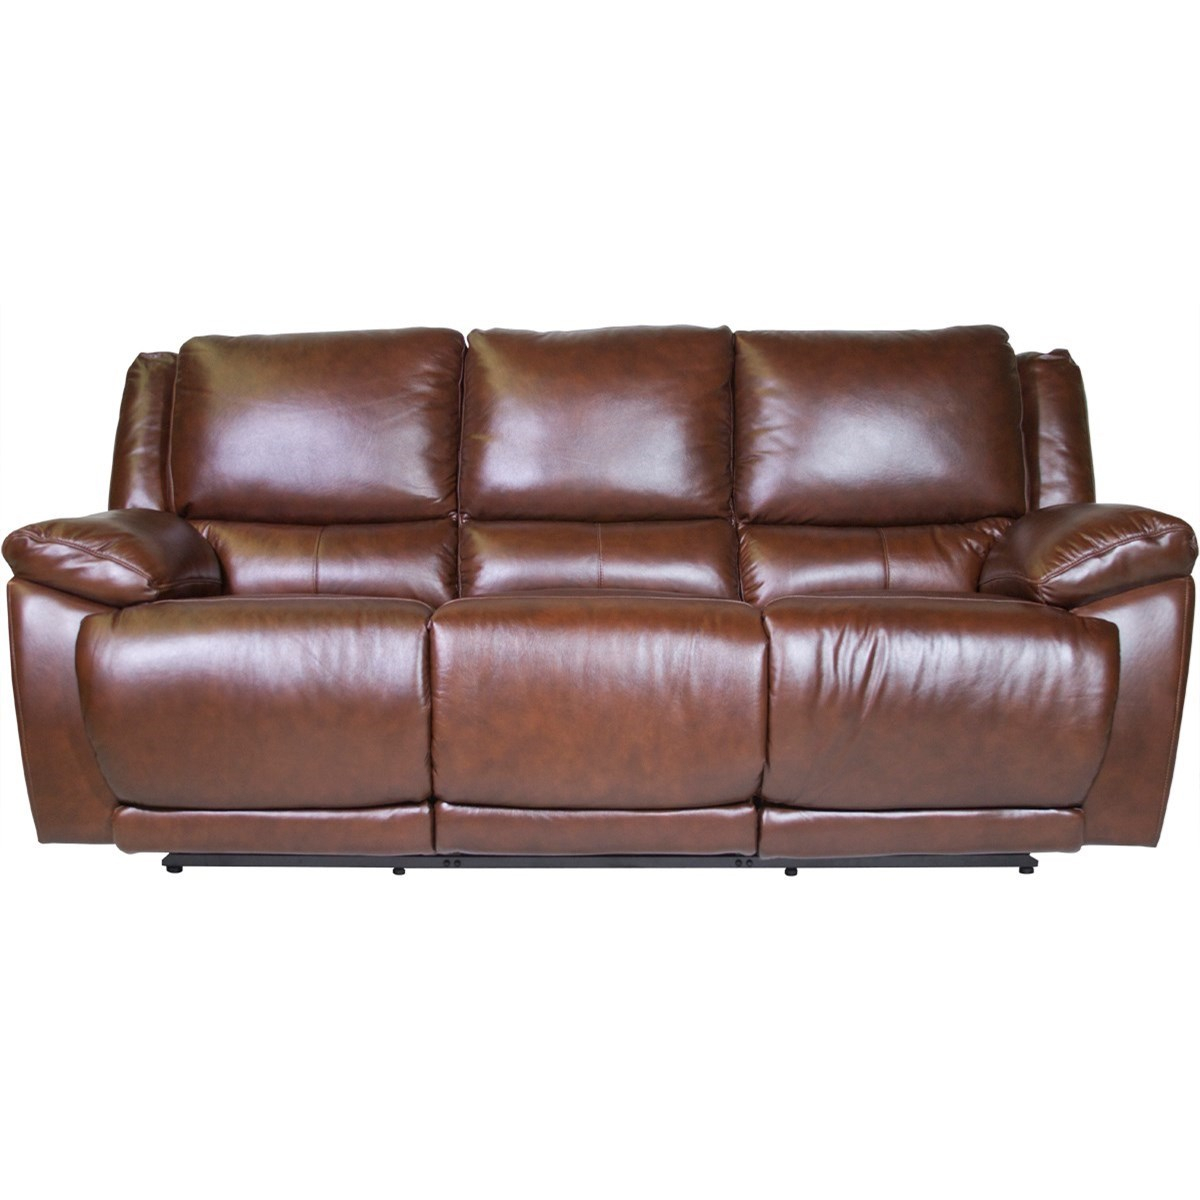 Futura Leather Curtis Power Reclining Sofa | Homeworld Regarding Nolan Leather Power Reclining Sofas (View 6 of 15)